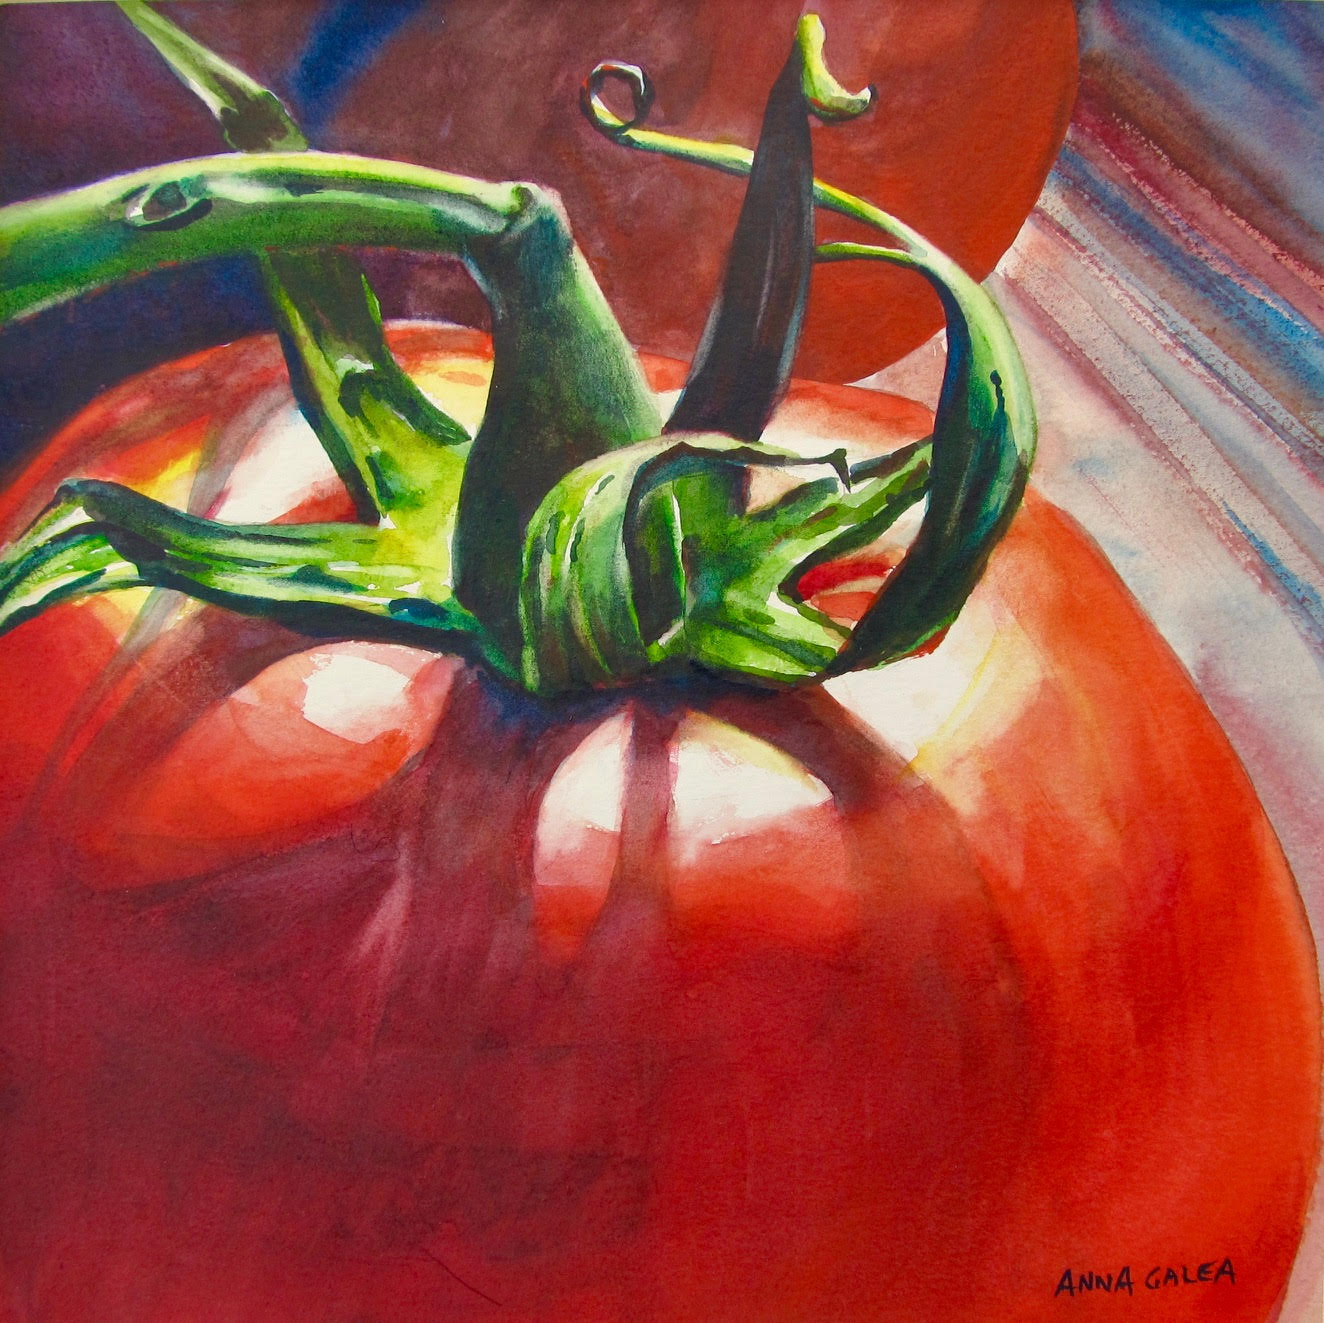 Tomato', 2012, Watercolour, 30x30cm, Anna Galea